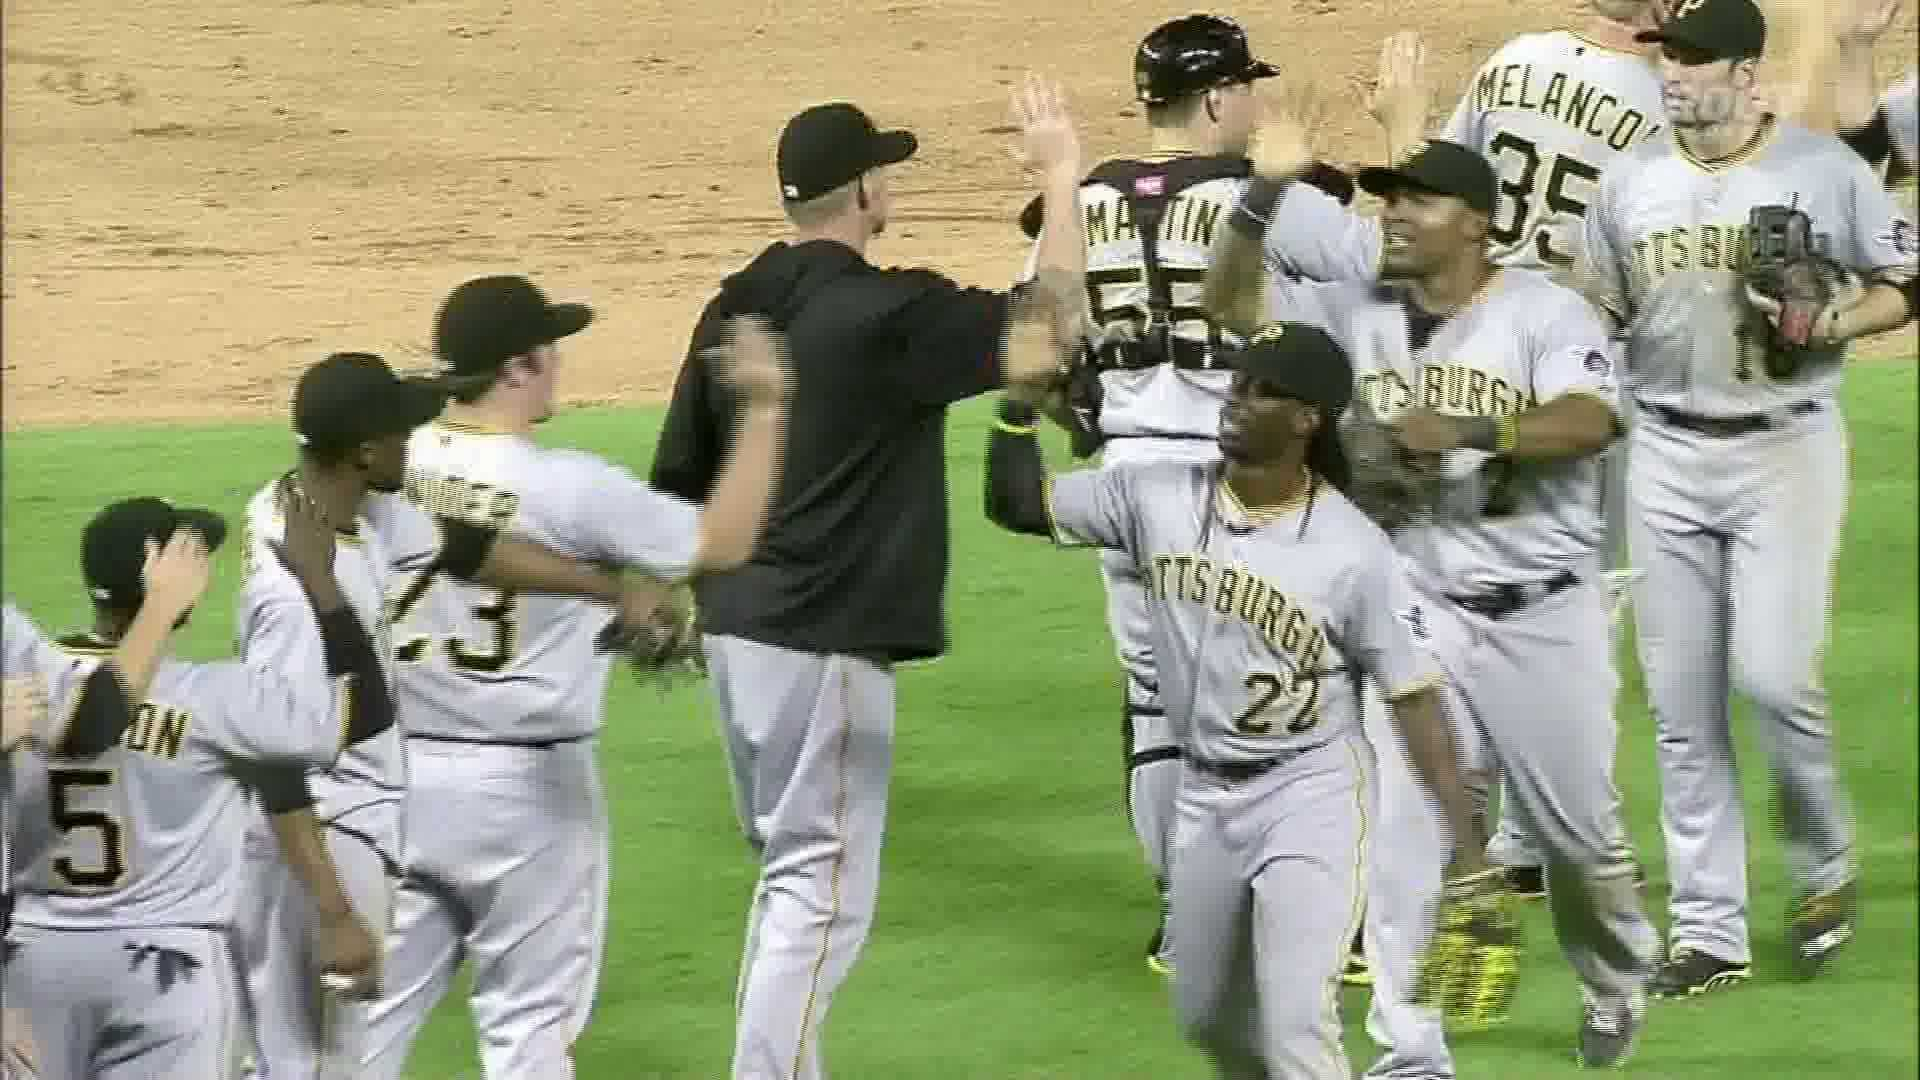 Pirates win